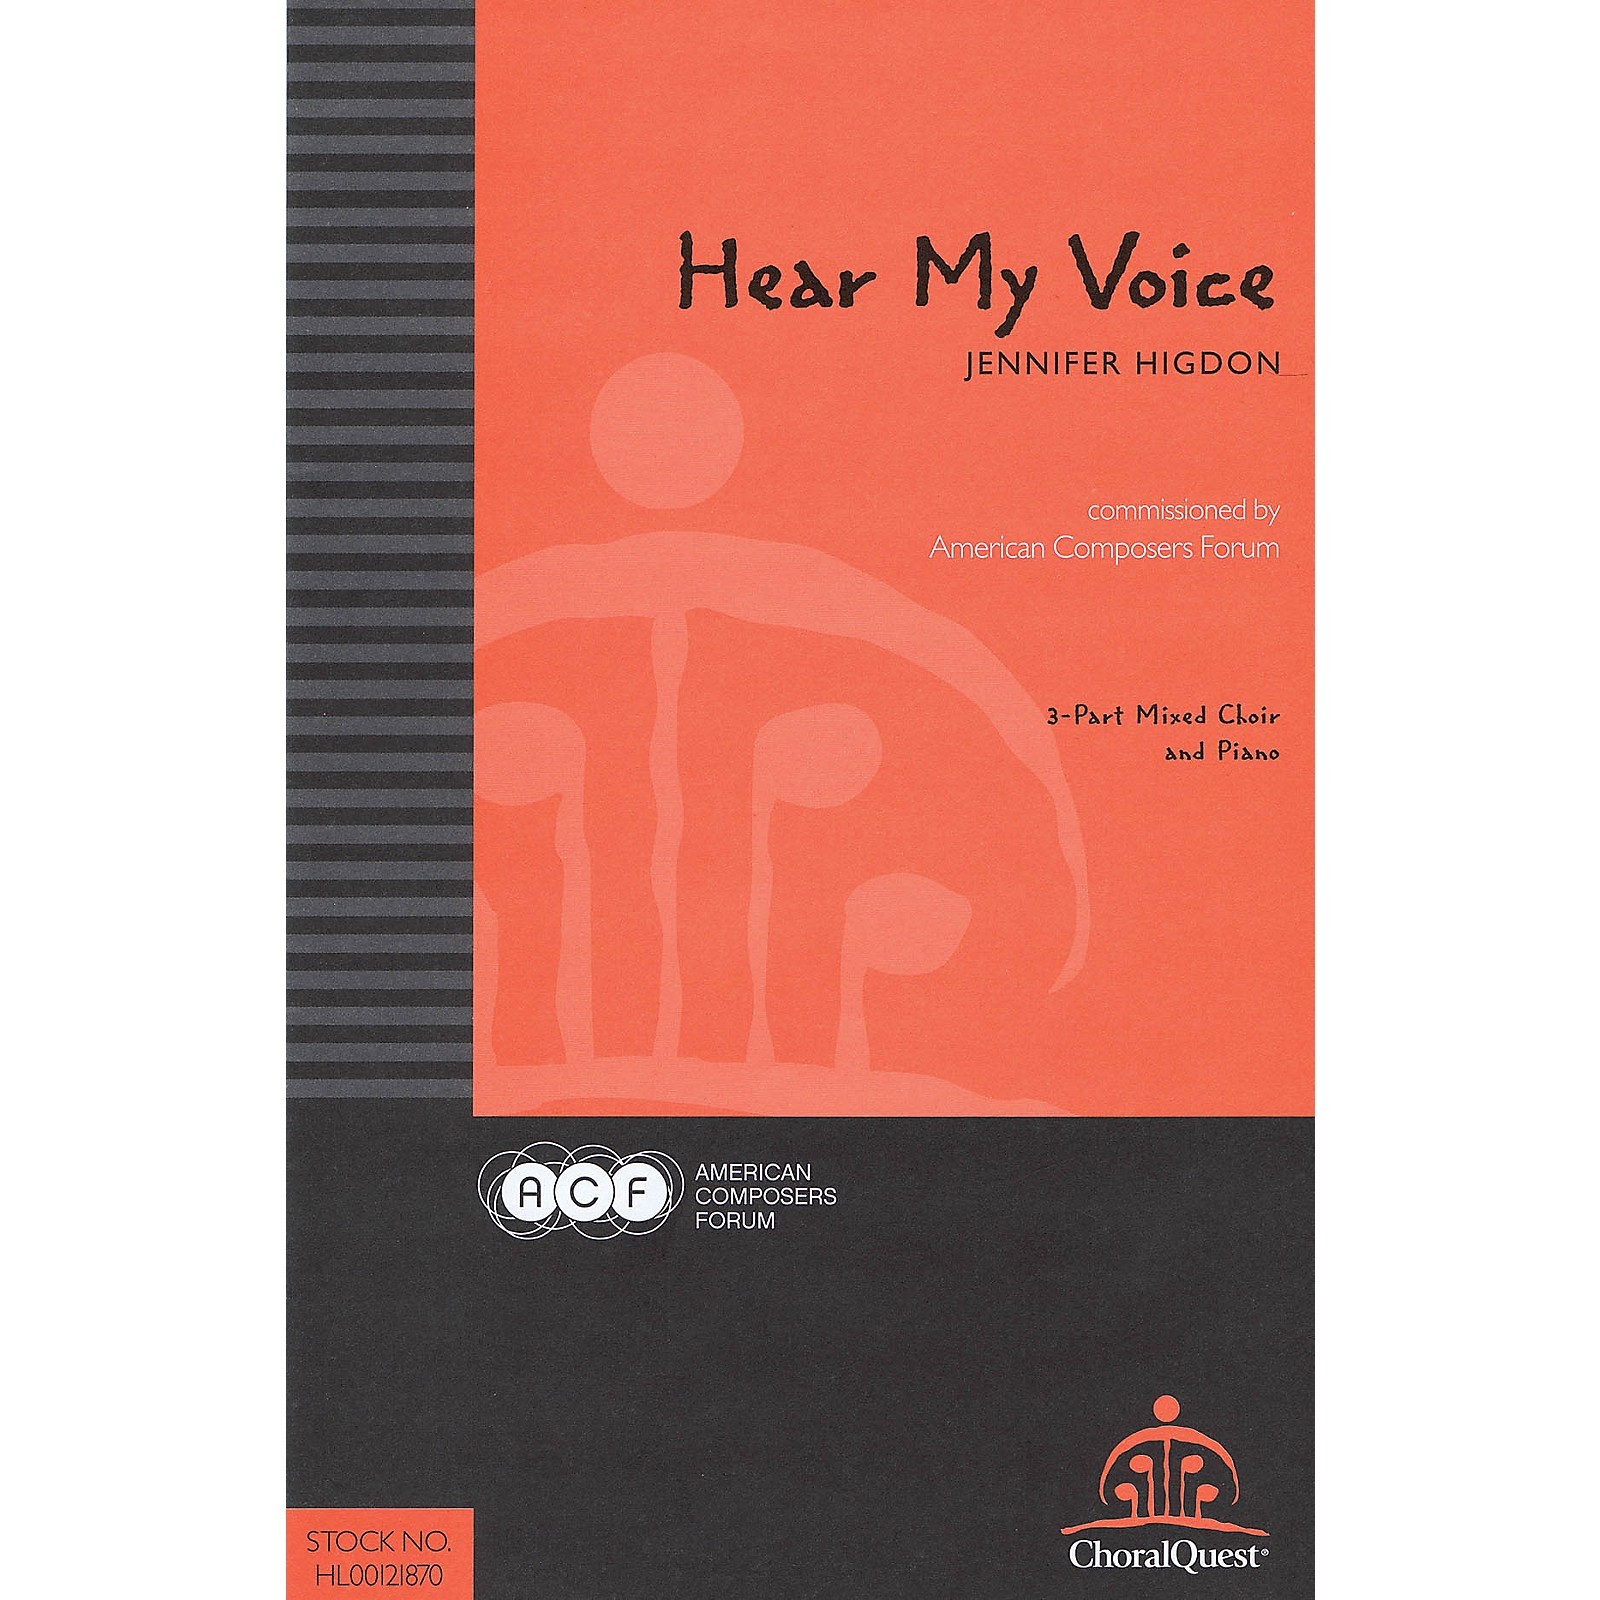 American Composers Forum Hear My Voice (Commissioned by American Composers Forum) 3-Part Mixed composed by Jennifer Higdon